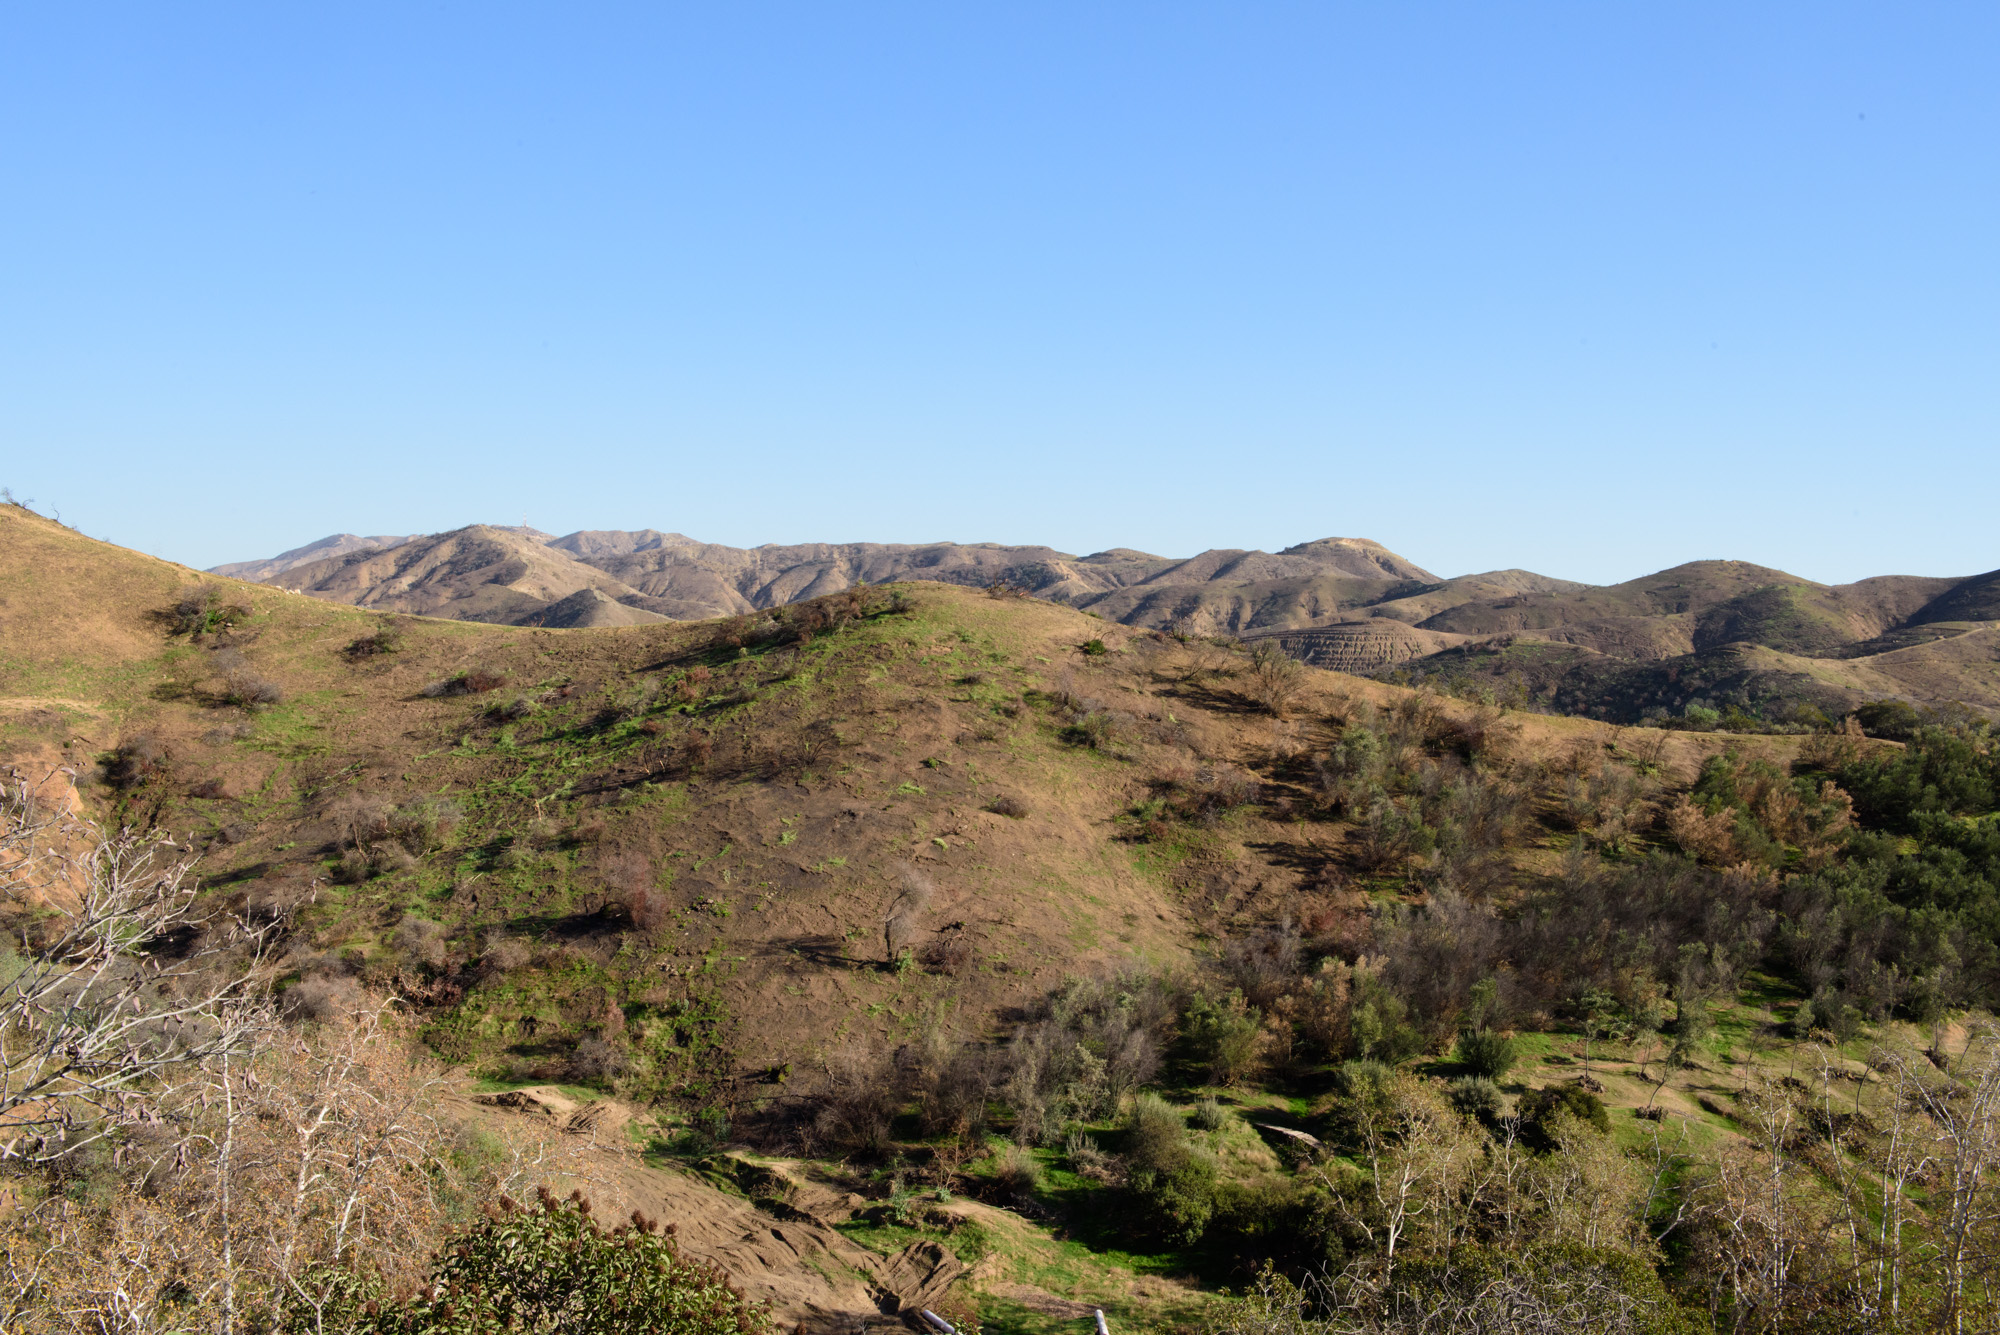 View of Verdugo Mountains from Wildflower Hill at the Theodore Payne Foundation. The mountains are covered with a mix of chaparral and coastal sage scrub.